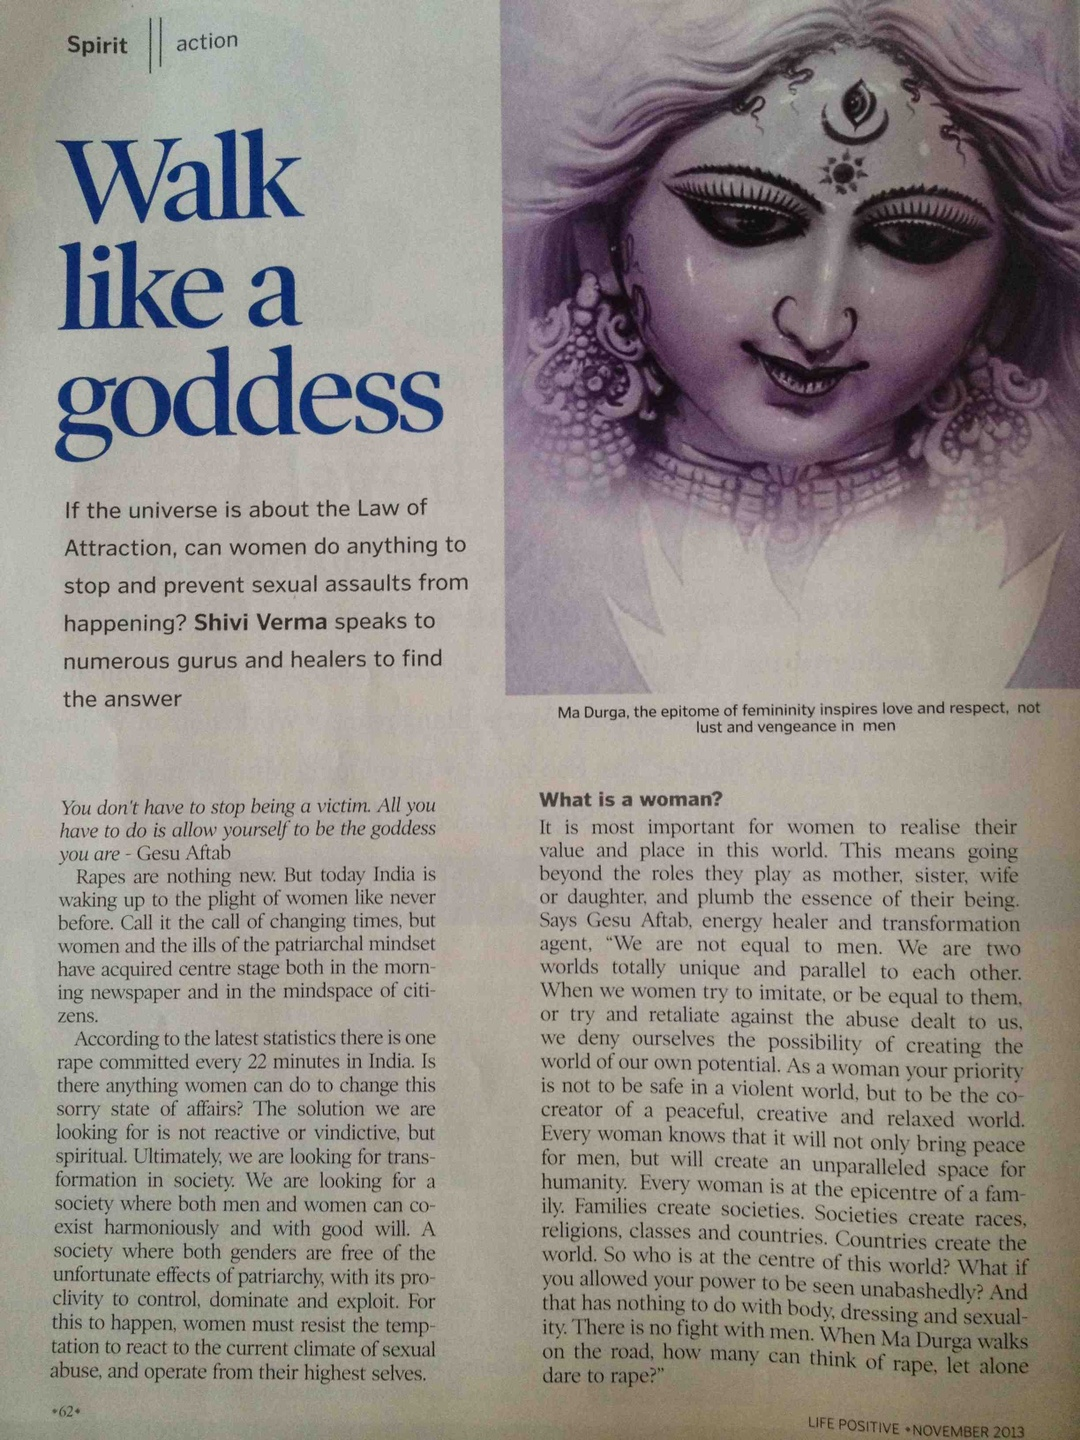 Udumbara Gesu founder of Navel Consciousness daughter of Mother Rabiya founder of Navel Awakening Initiation talks about Maa Durga and what it is to be a woman in Life Positive magazine in 2013